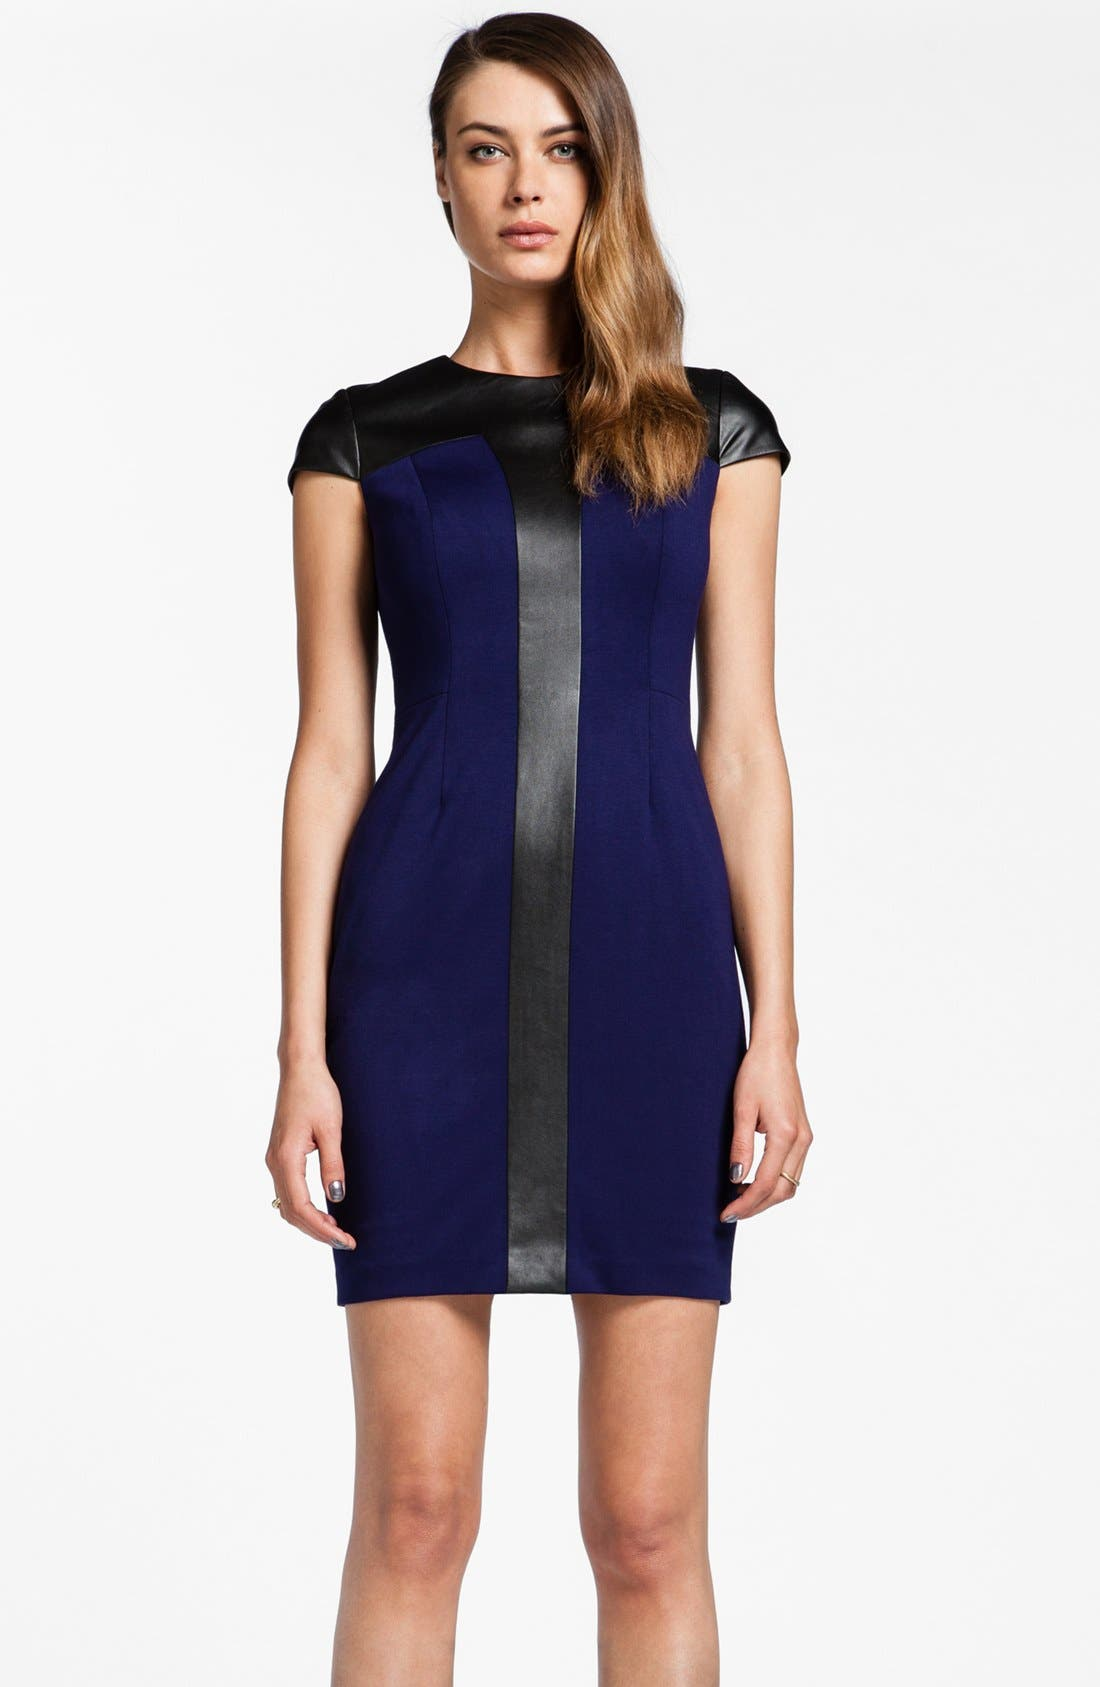 Main Image - Cynthia Steffe 'Pandora' Faux Leather Trim Sheath Dress